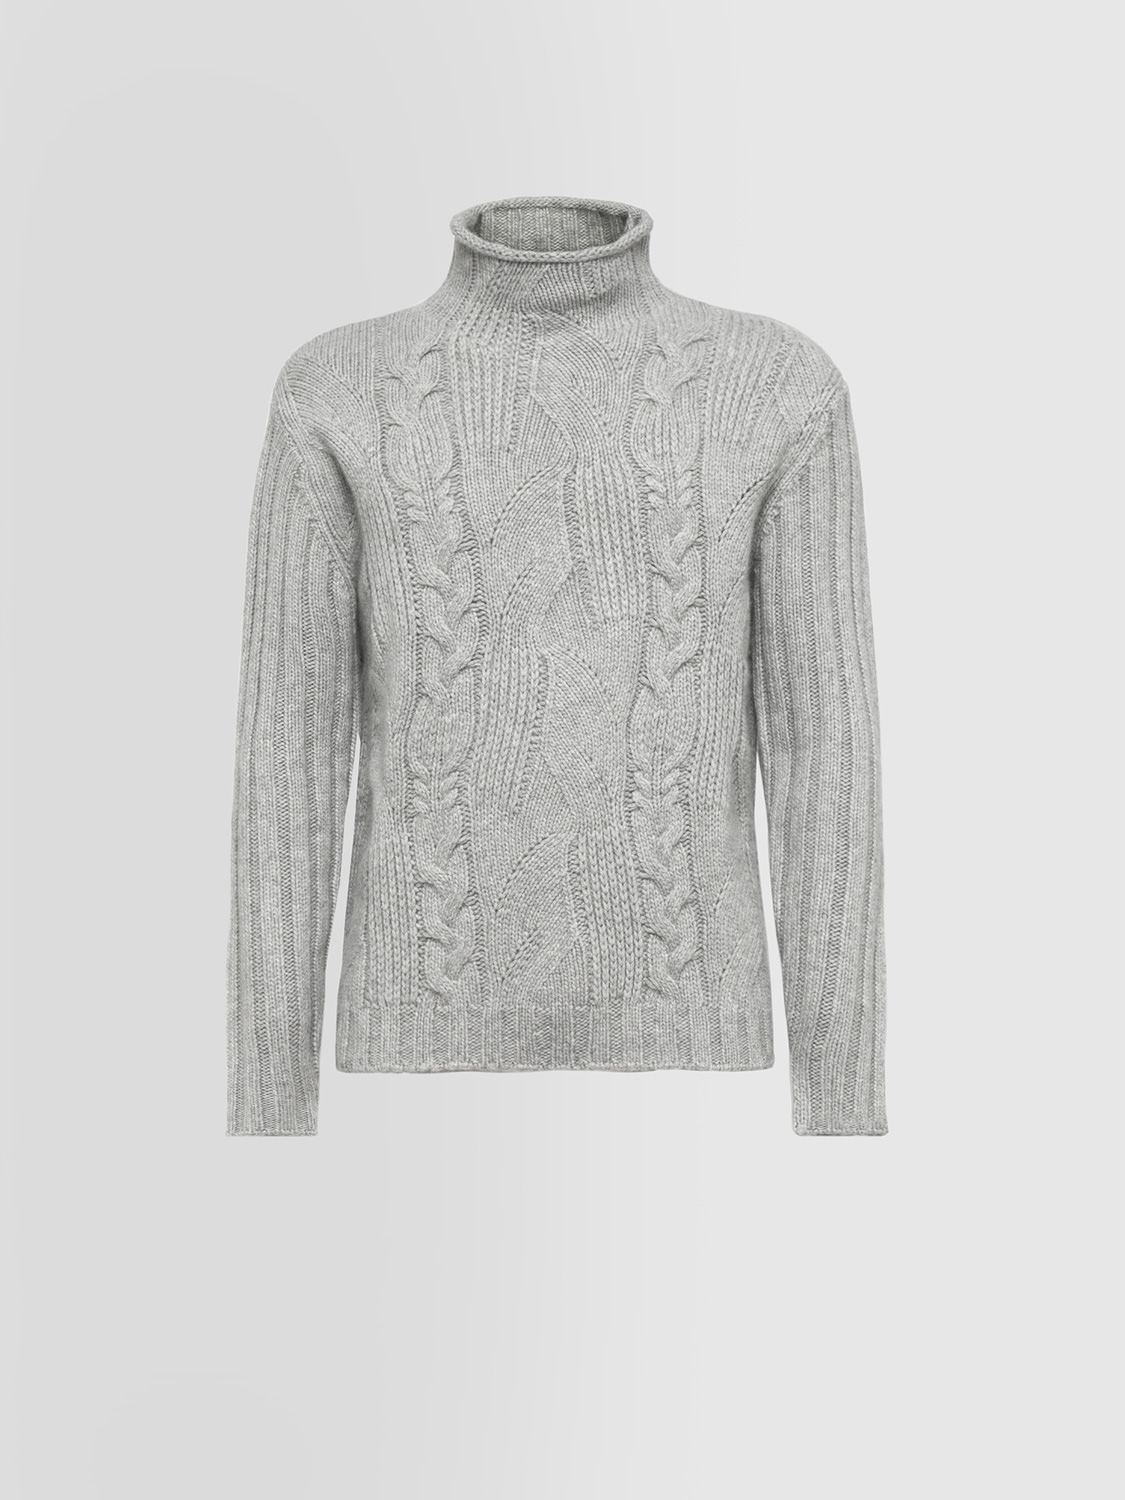 ALPHA STUDIO: SPECIAL CRATER NECK SWEATER IN CASHMERE